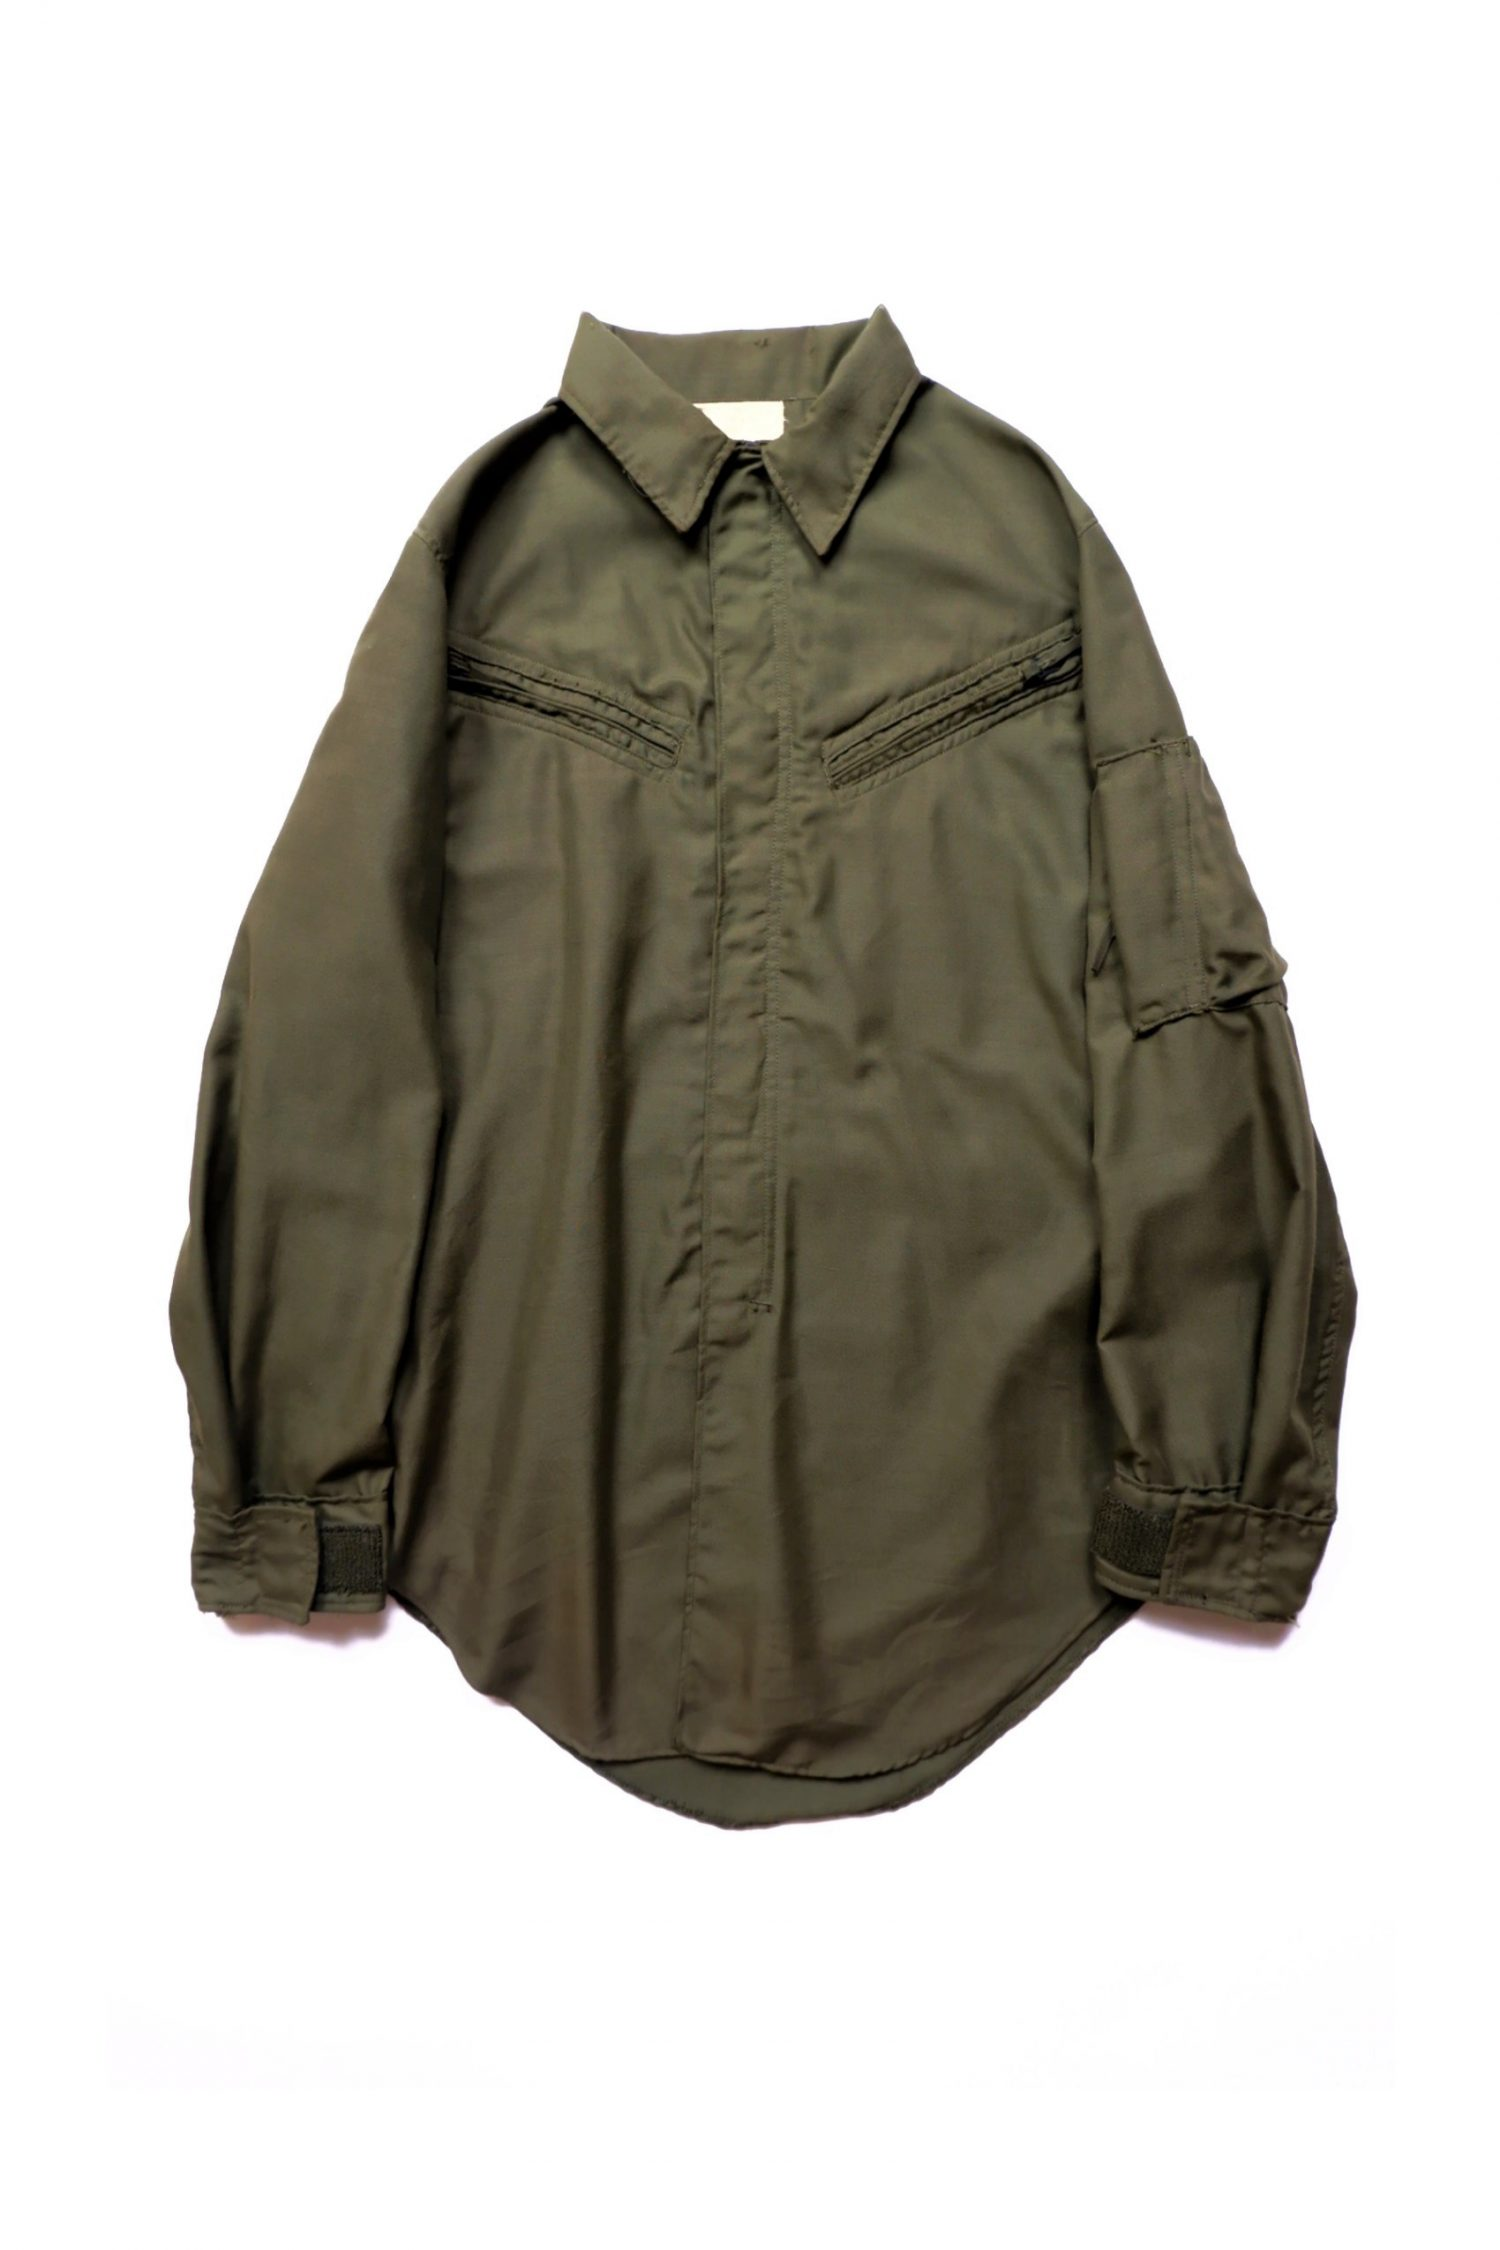 Military Flight Shirt